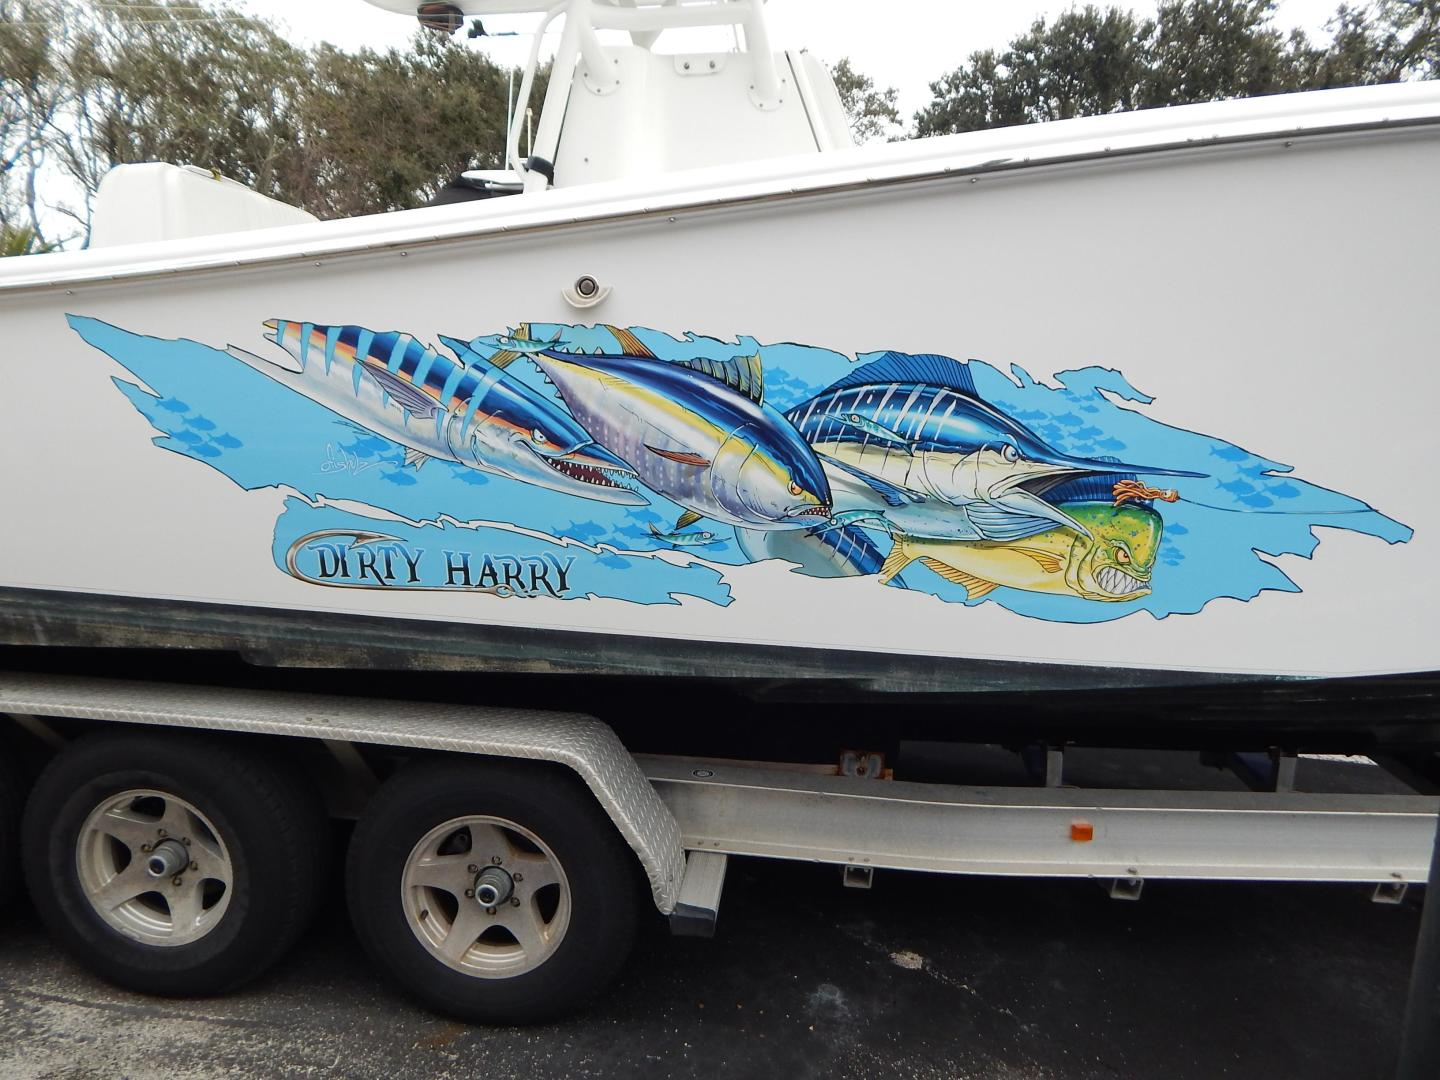 Yellowfin-34 Offshore CC 2008-DIRTY HARRY St. Augustine-Florida-United States-1629866 | Thumbnail